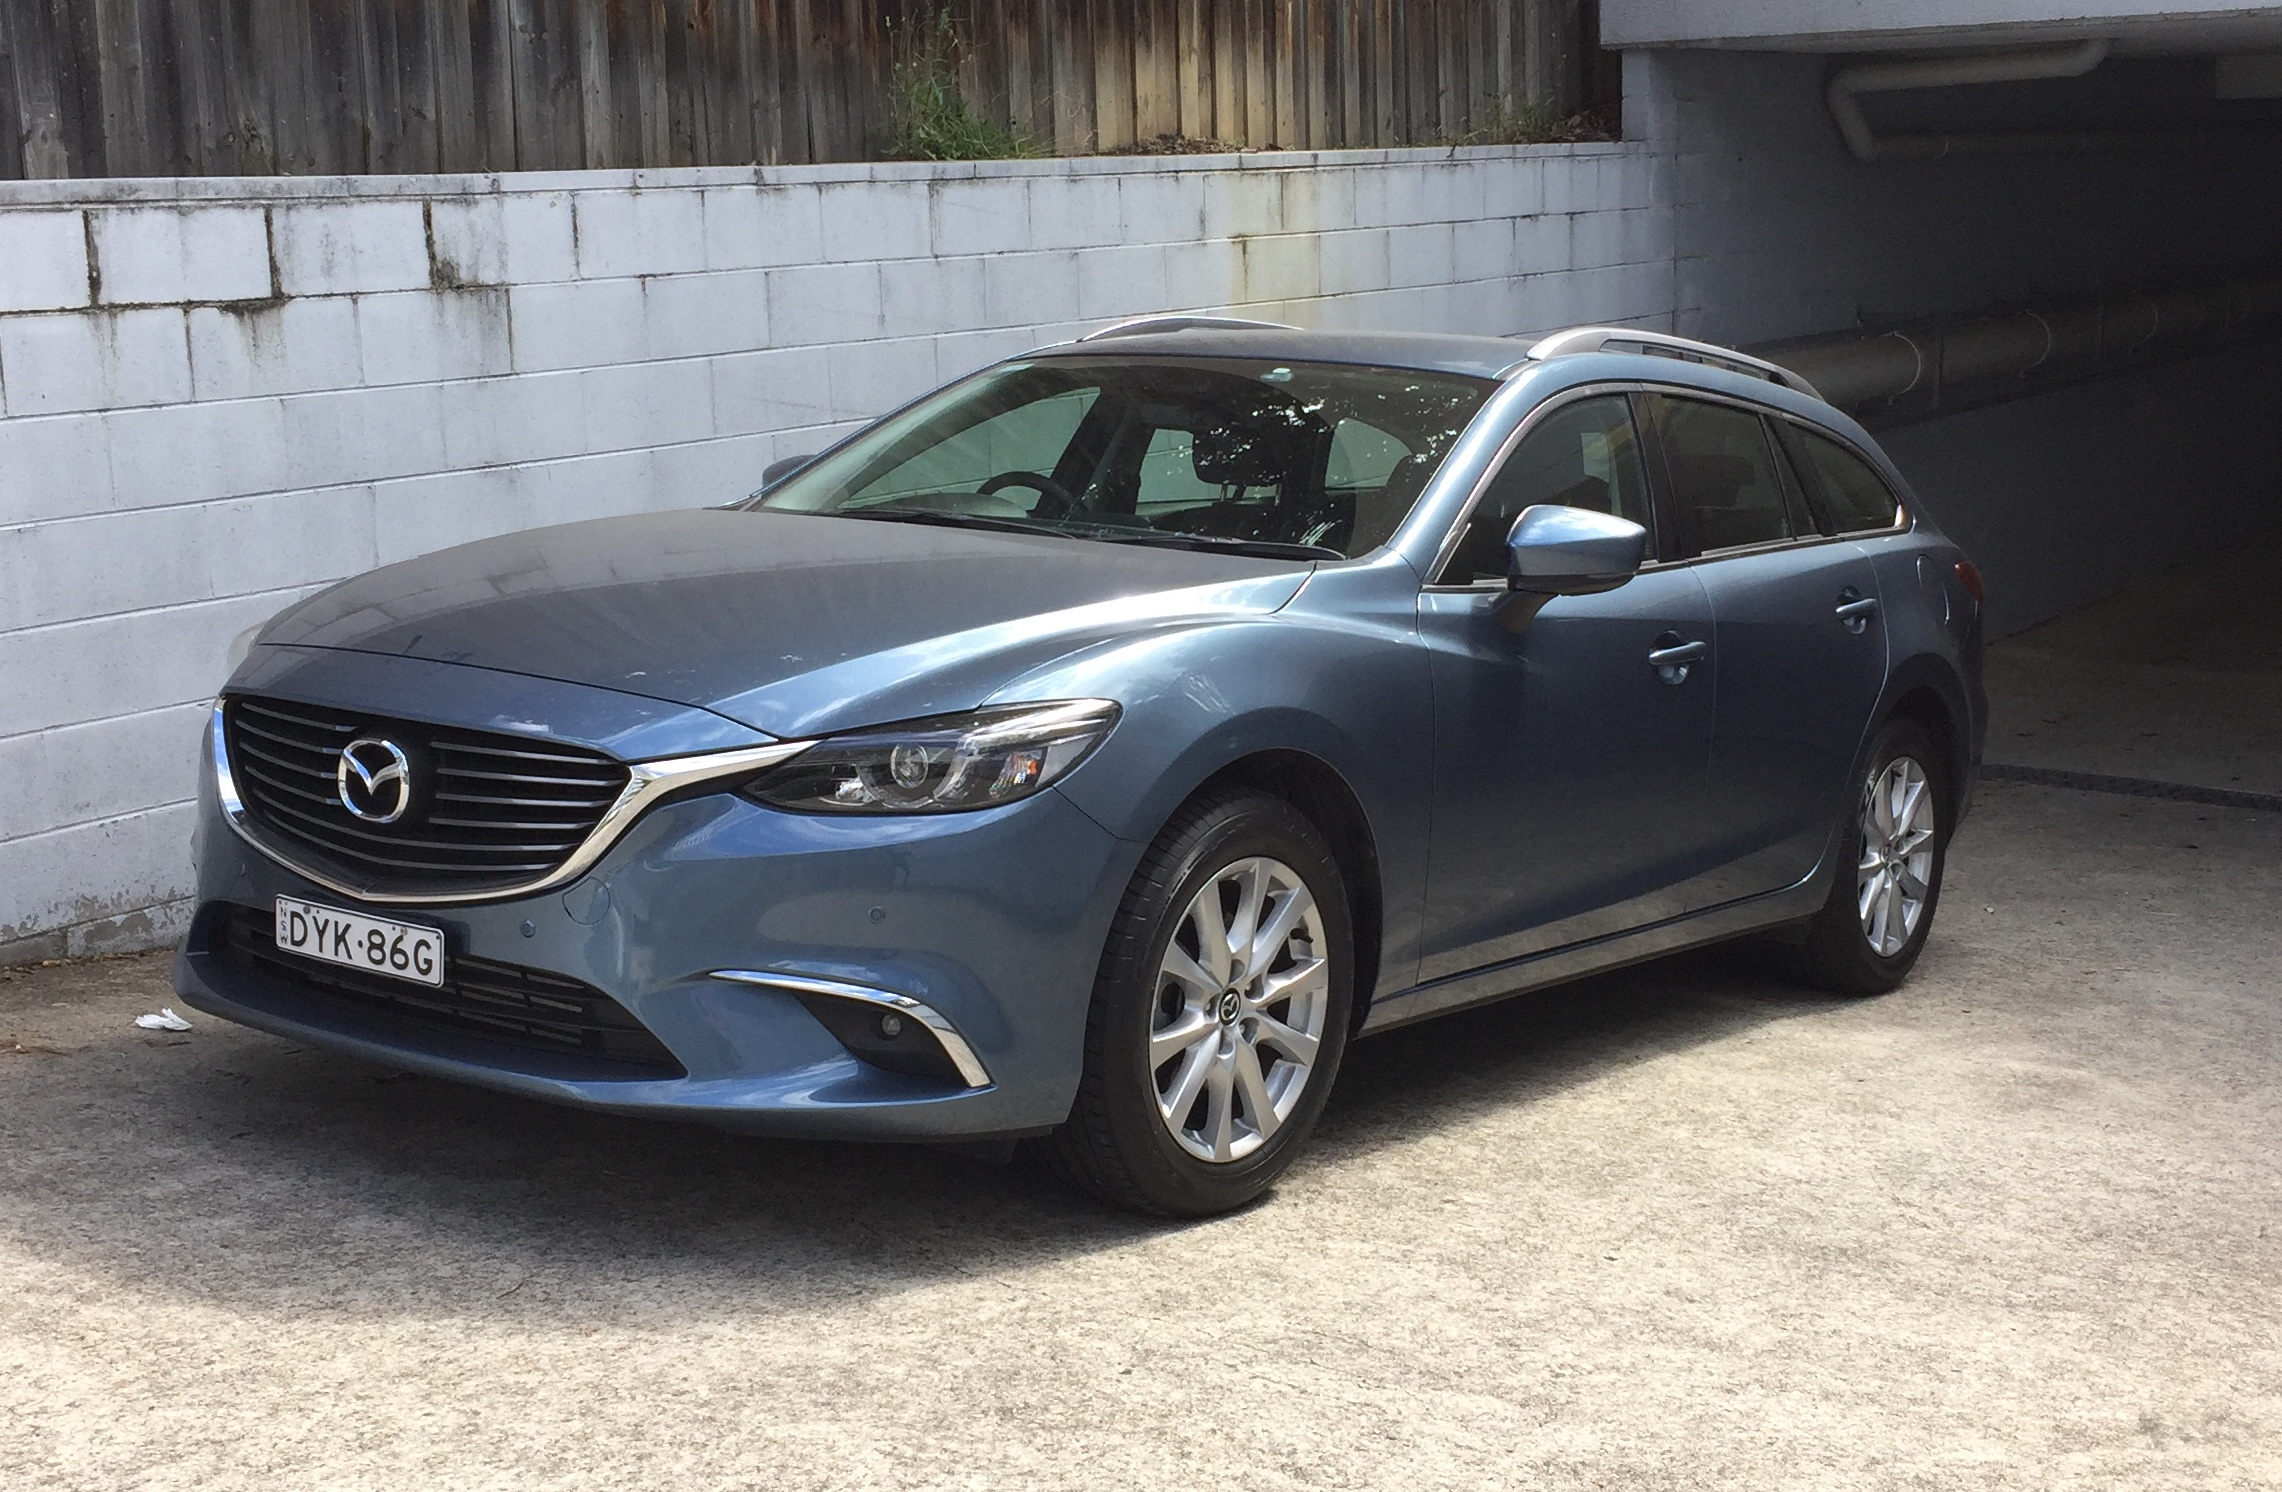 Picture of Jamie's 2017 Mazda 6 Touring